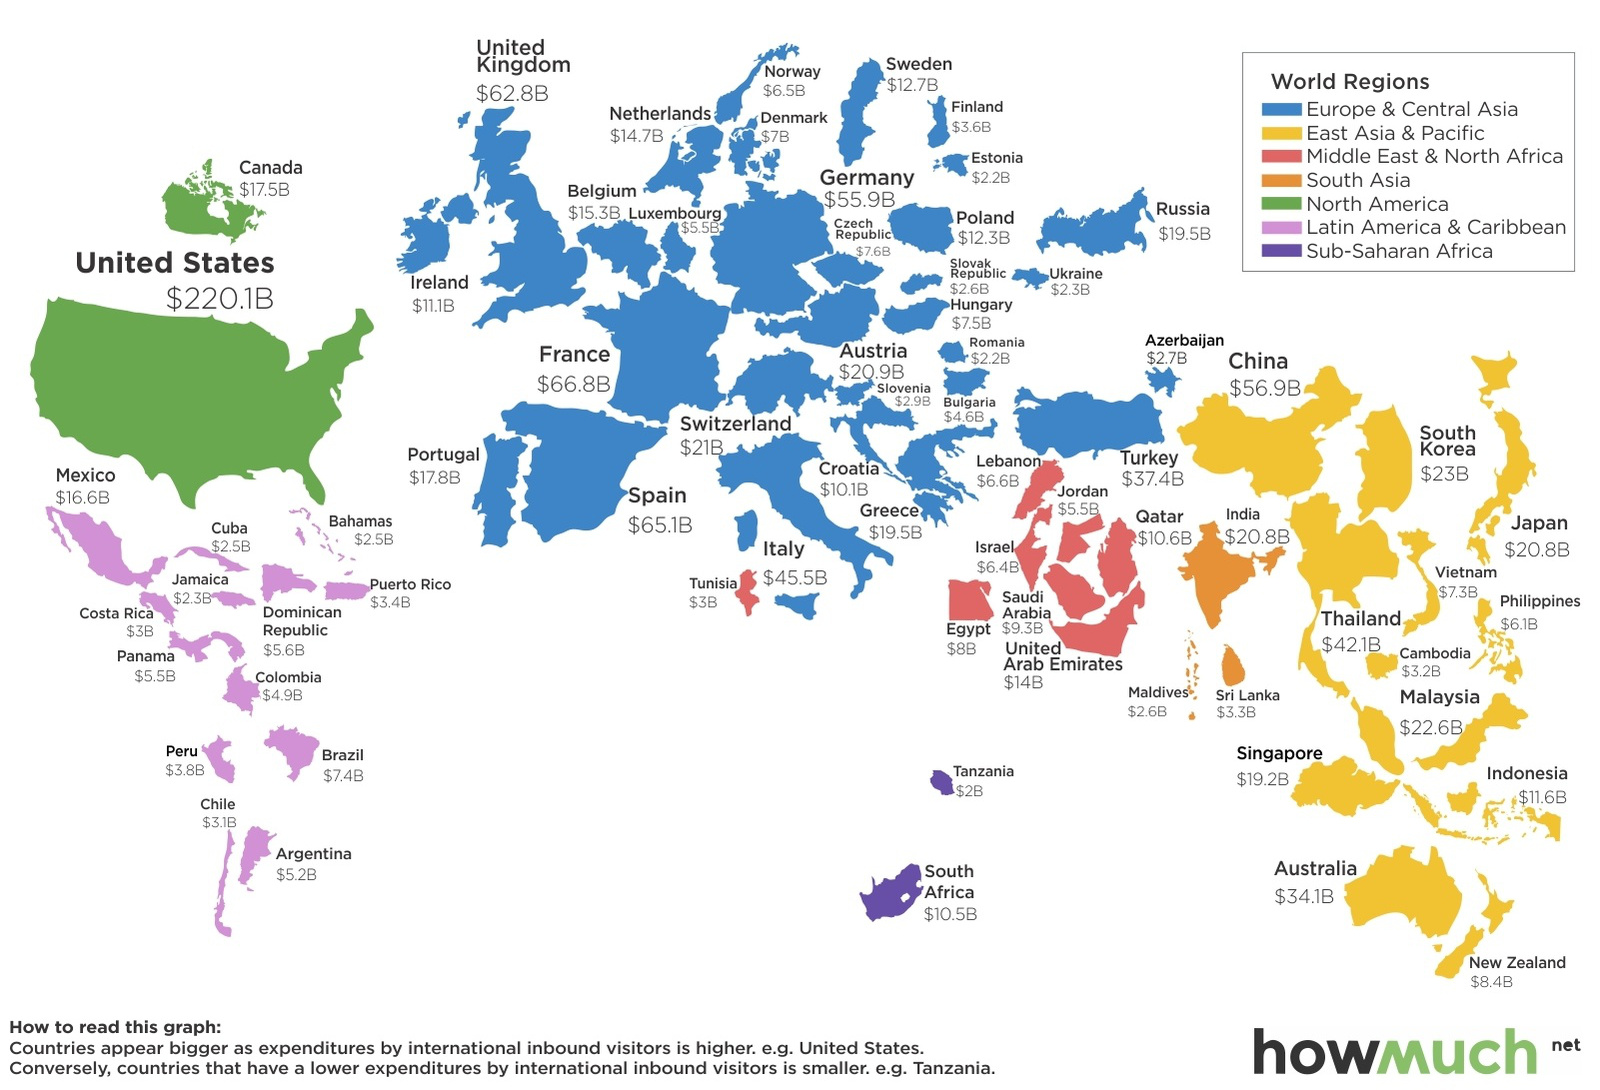 How Much Money Do Tourists Spend in Each Country?